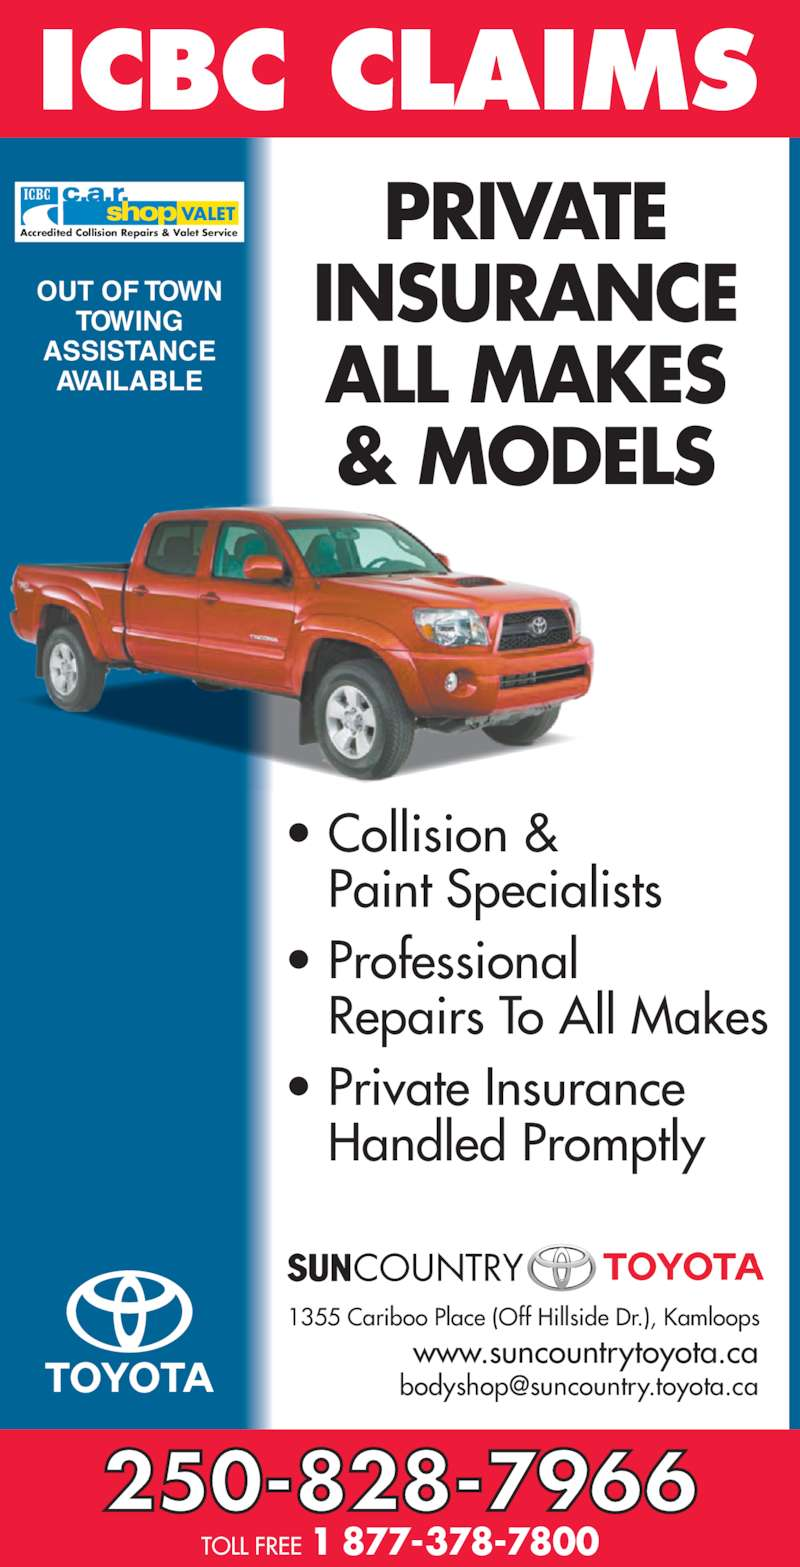 Sun Country Toyota (250-828-7966) - Display Ad - PRIVATE INSURANCE ALL MAKES & MODELS ? Collision & Paint Specialists ? Professional Repairs To All Makes ? Private Insurance Handled Promptly OUT OF TOWN TOWING ASSISTANCE AVAILABLE VALET Accredited Collision Repairs & Valet Service 250-828-7966 TOLL FREE 1 877-378-7800 1355 Cariboo Place (Off Hillside Dr.), Kamloops www.suncountrytoyota.ca